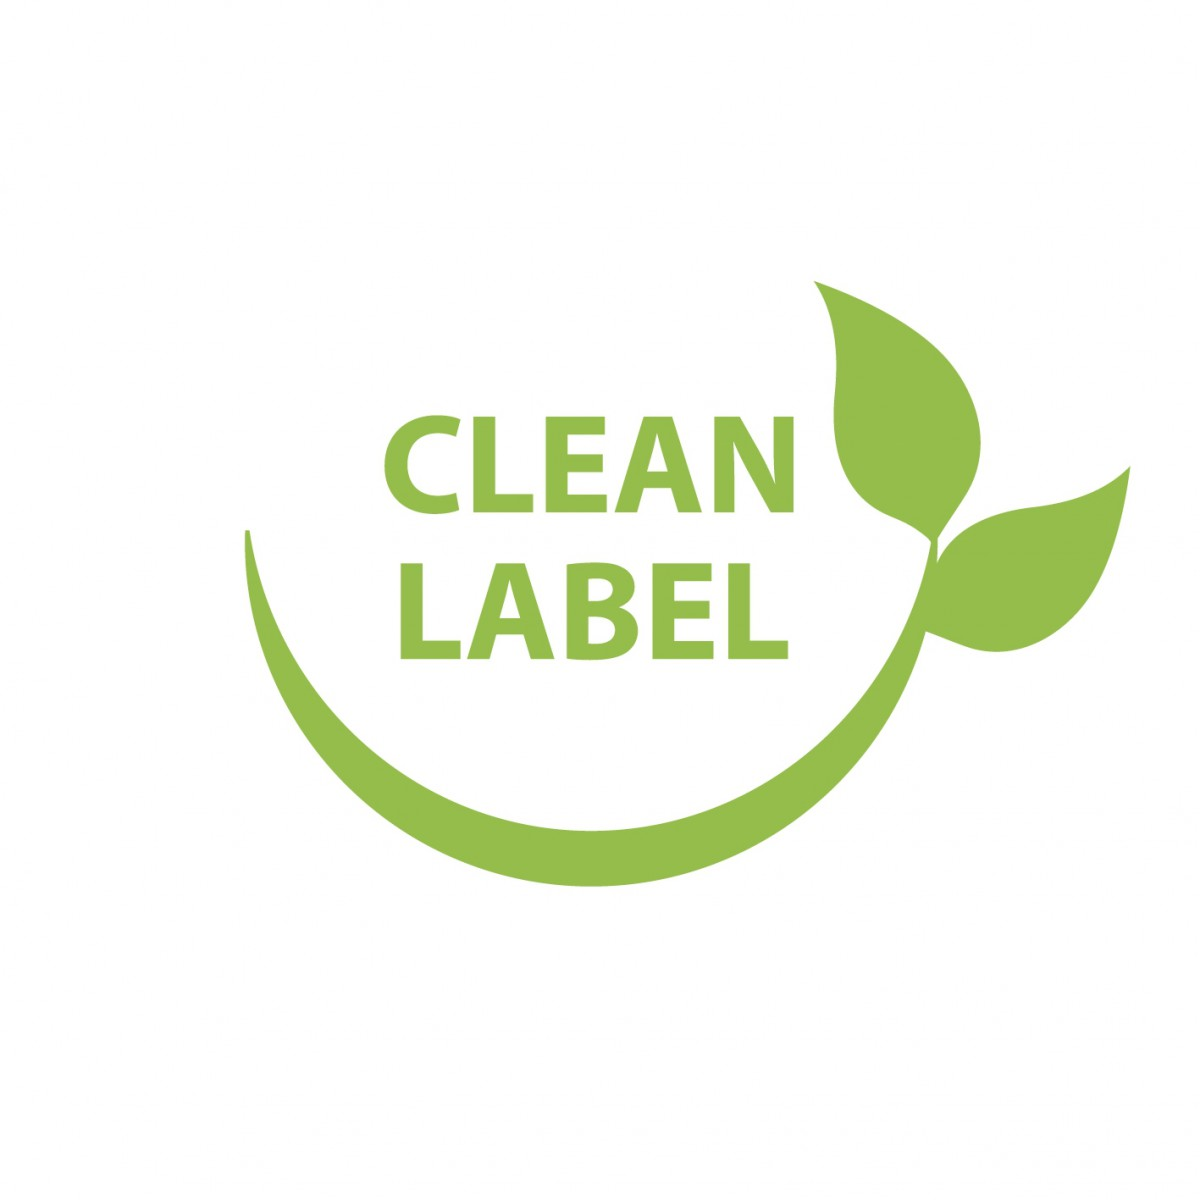 cleanlabel